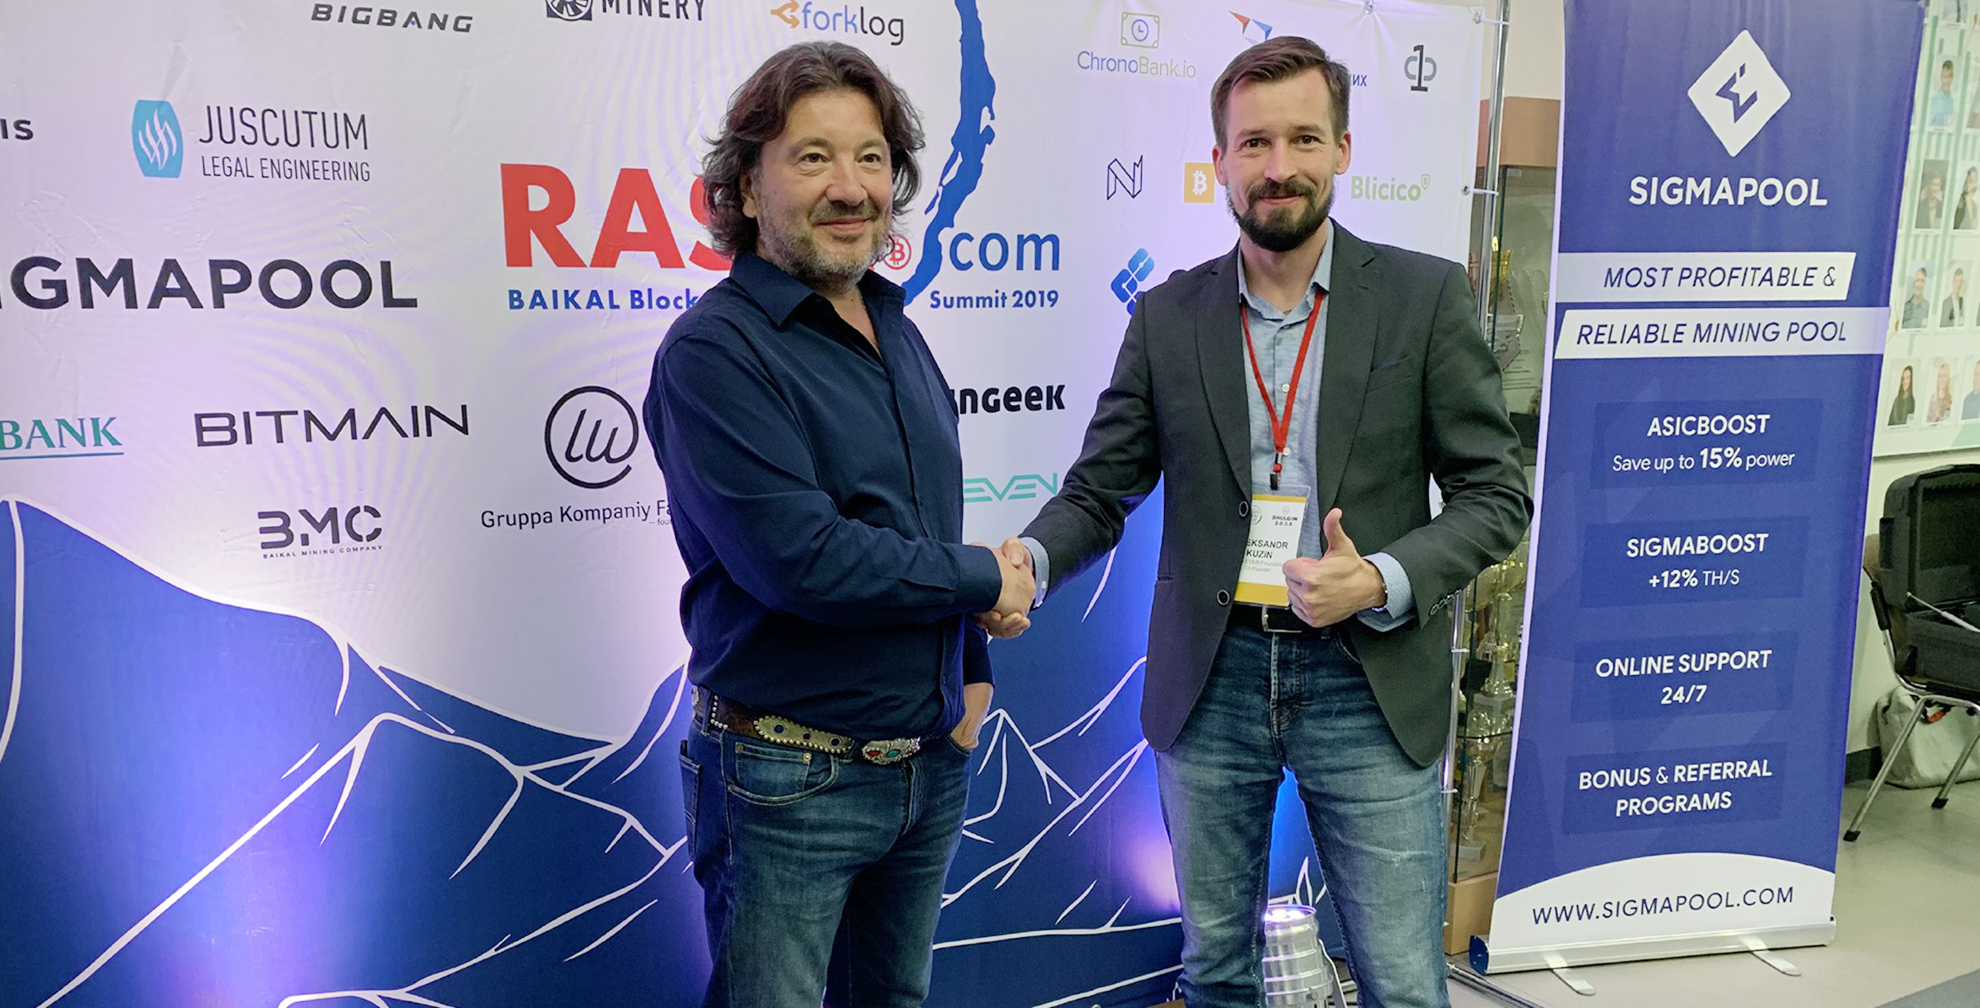 Alexander Kuzin and Alexander Shulgin, Summit host, entrepreneur, and investor